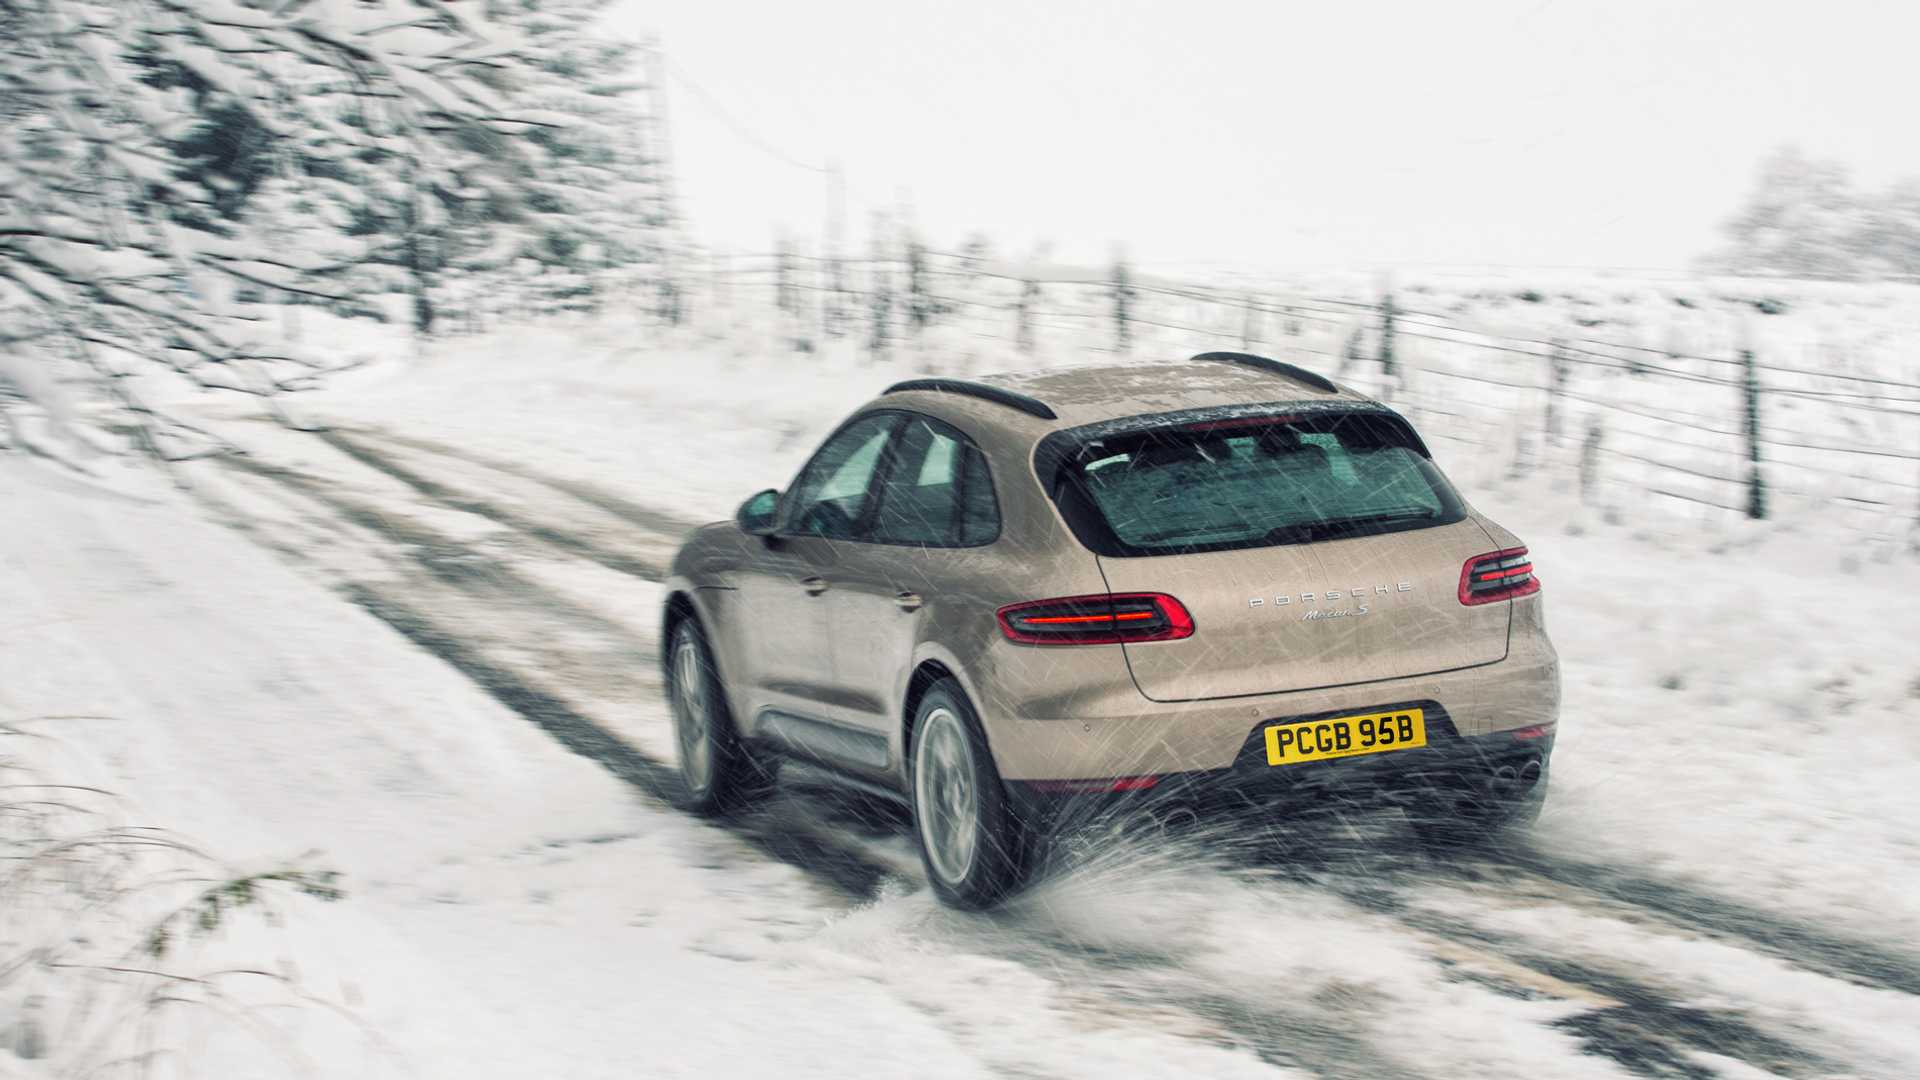 Best Value Used Suv >> The Five Best Value Used Suvs For Winter